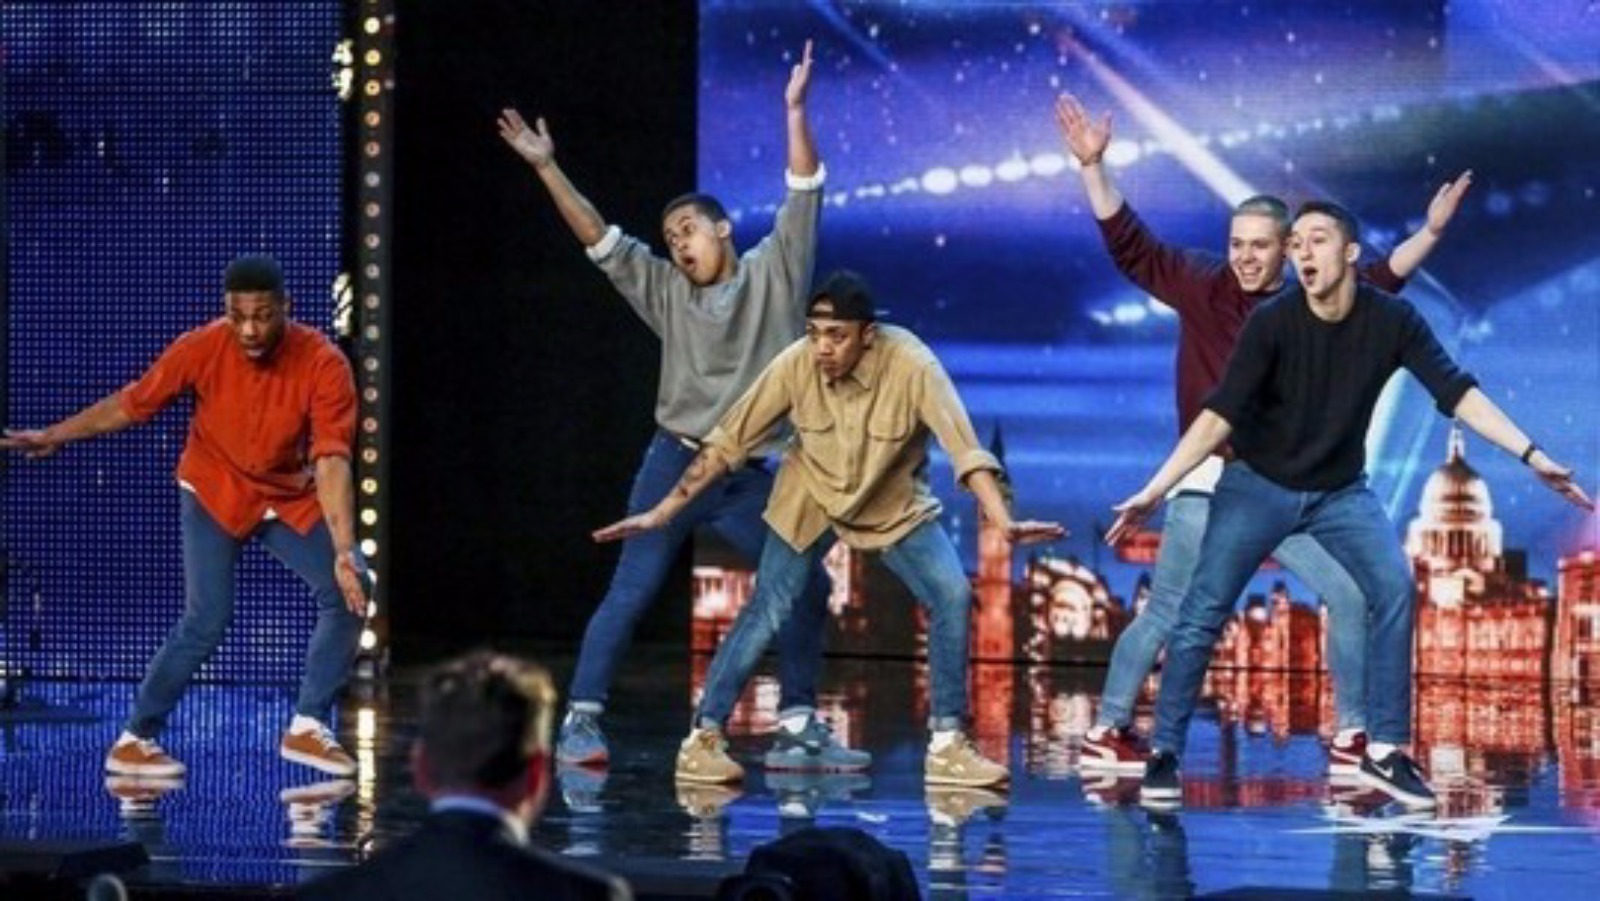 Boyband Impress During Britain S Got Talent Audition Itv News